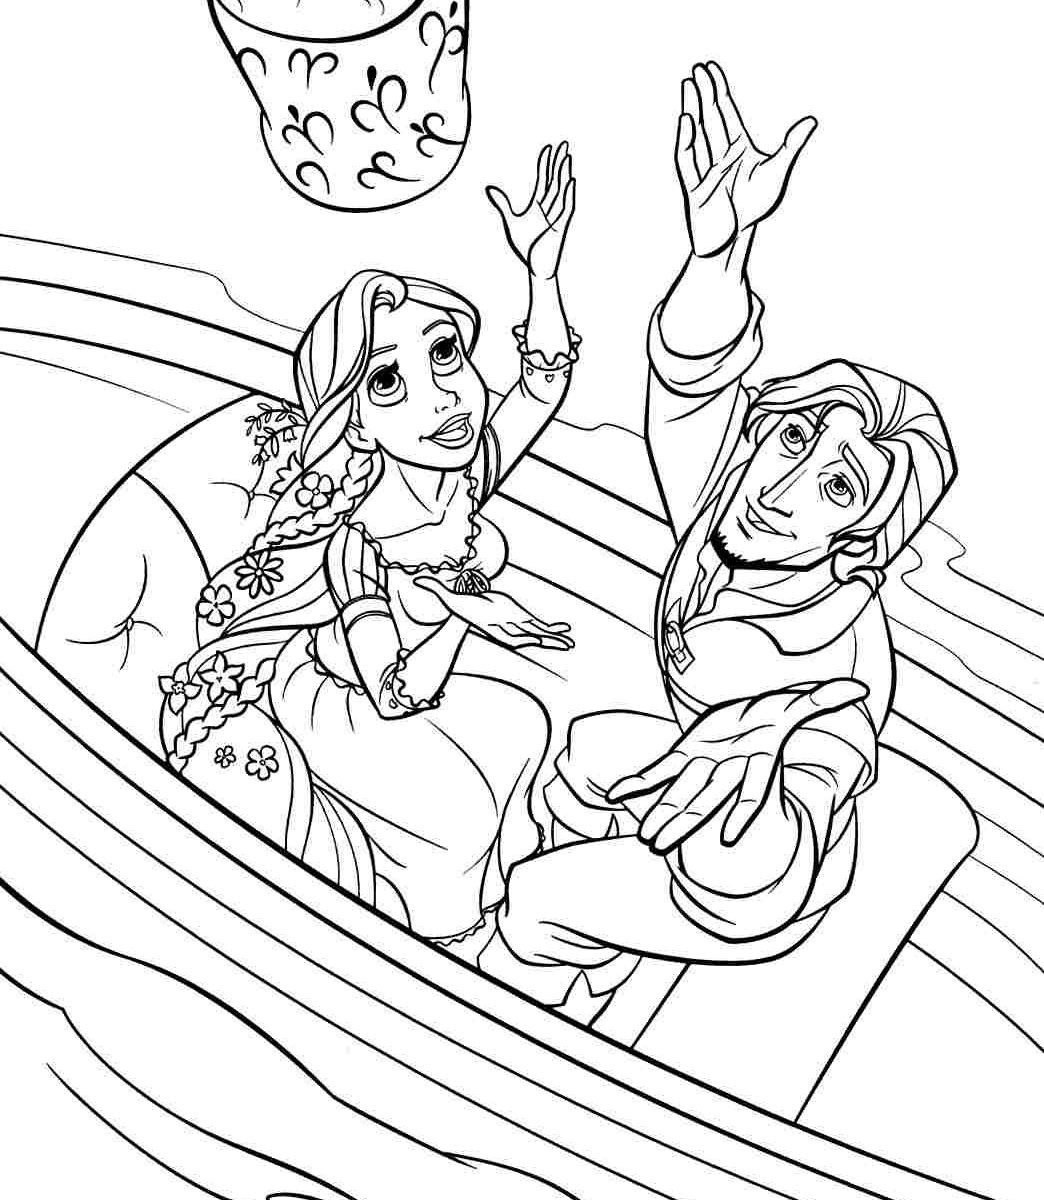 1044x1200 Tangled Coloring Pages Download Games Barbiepunzel Online Easy